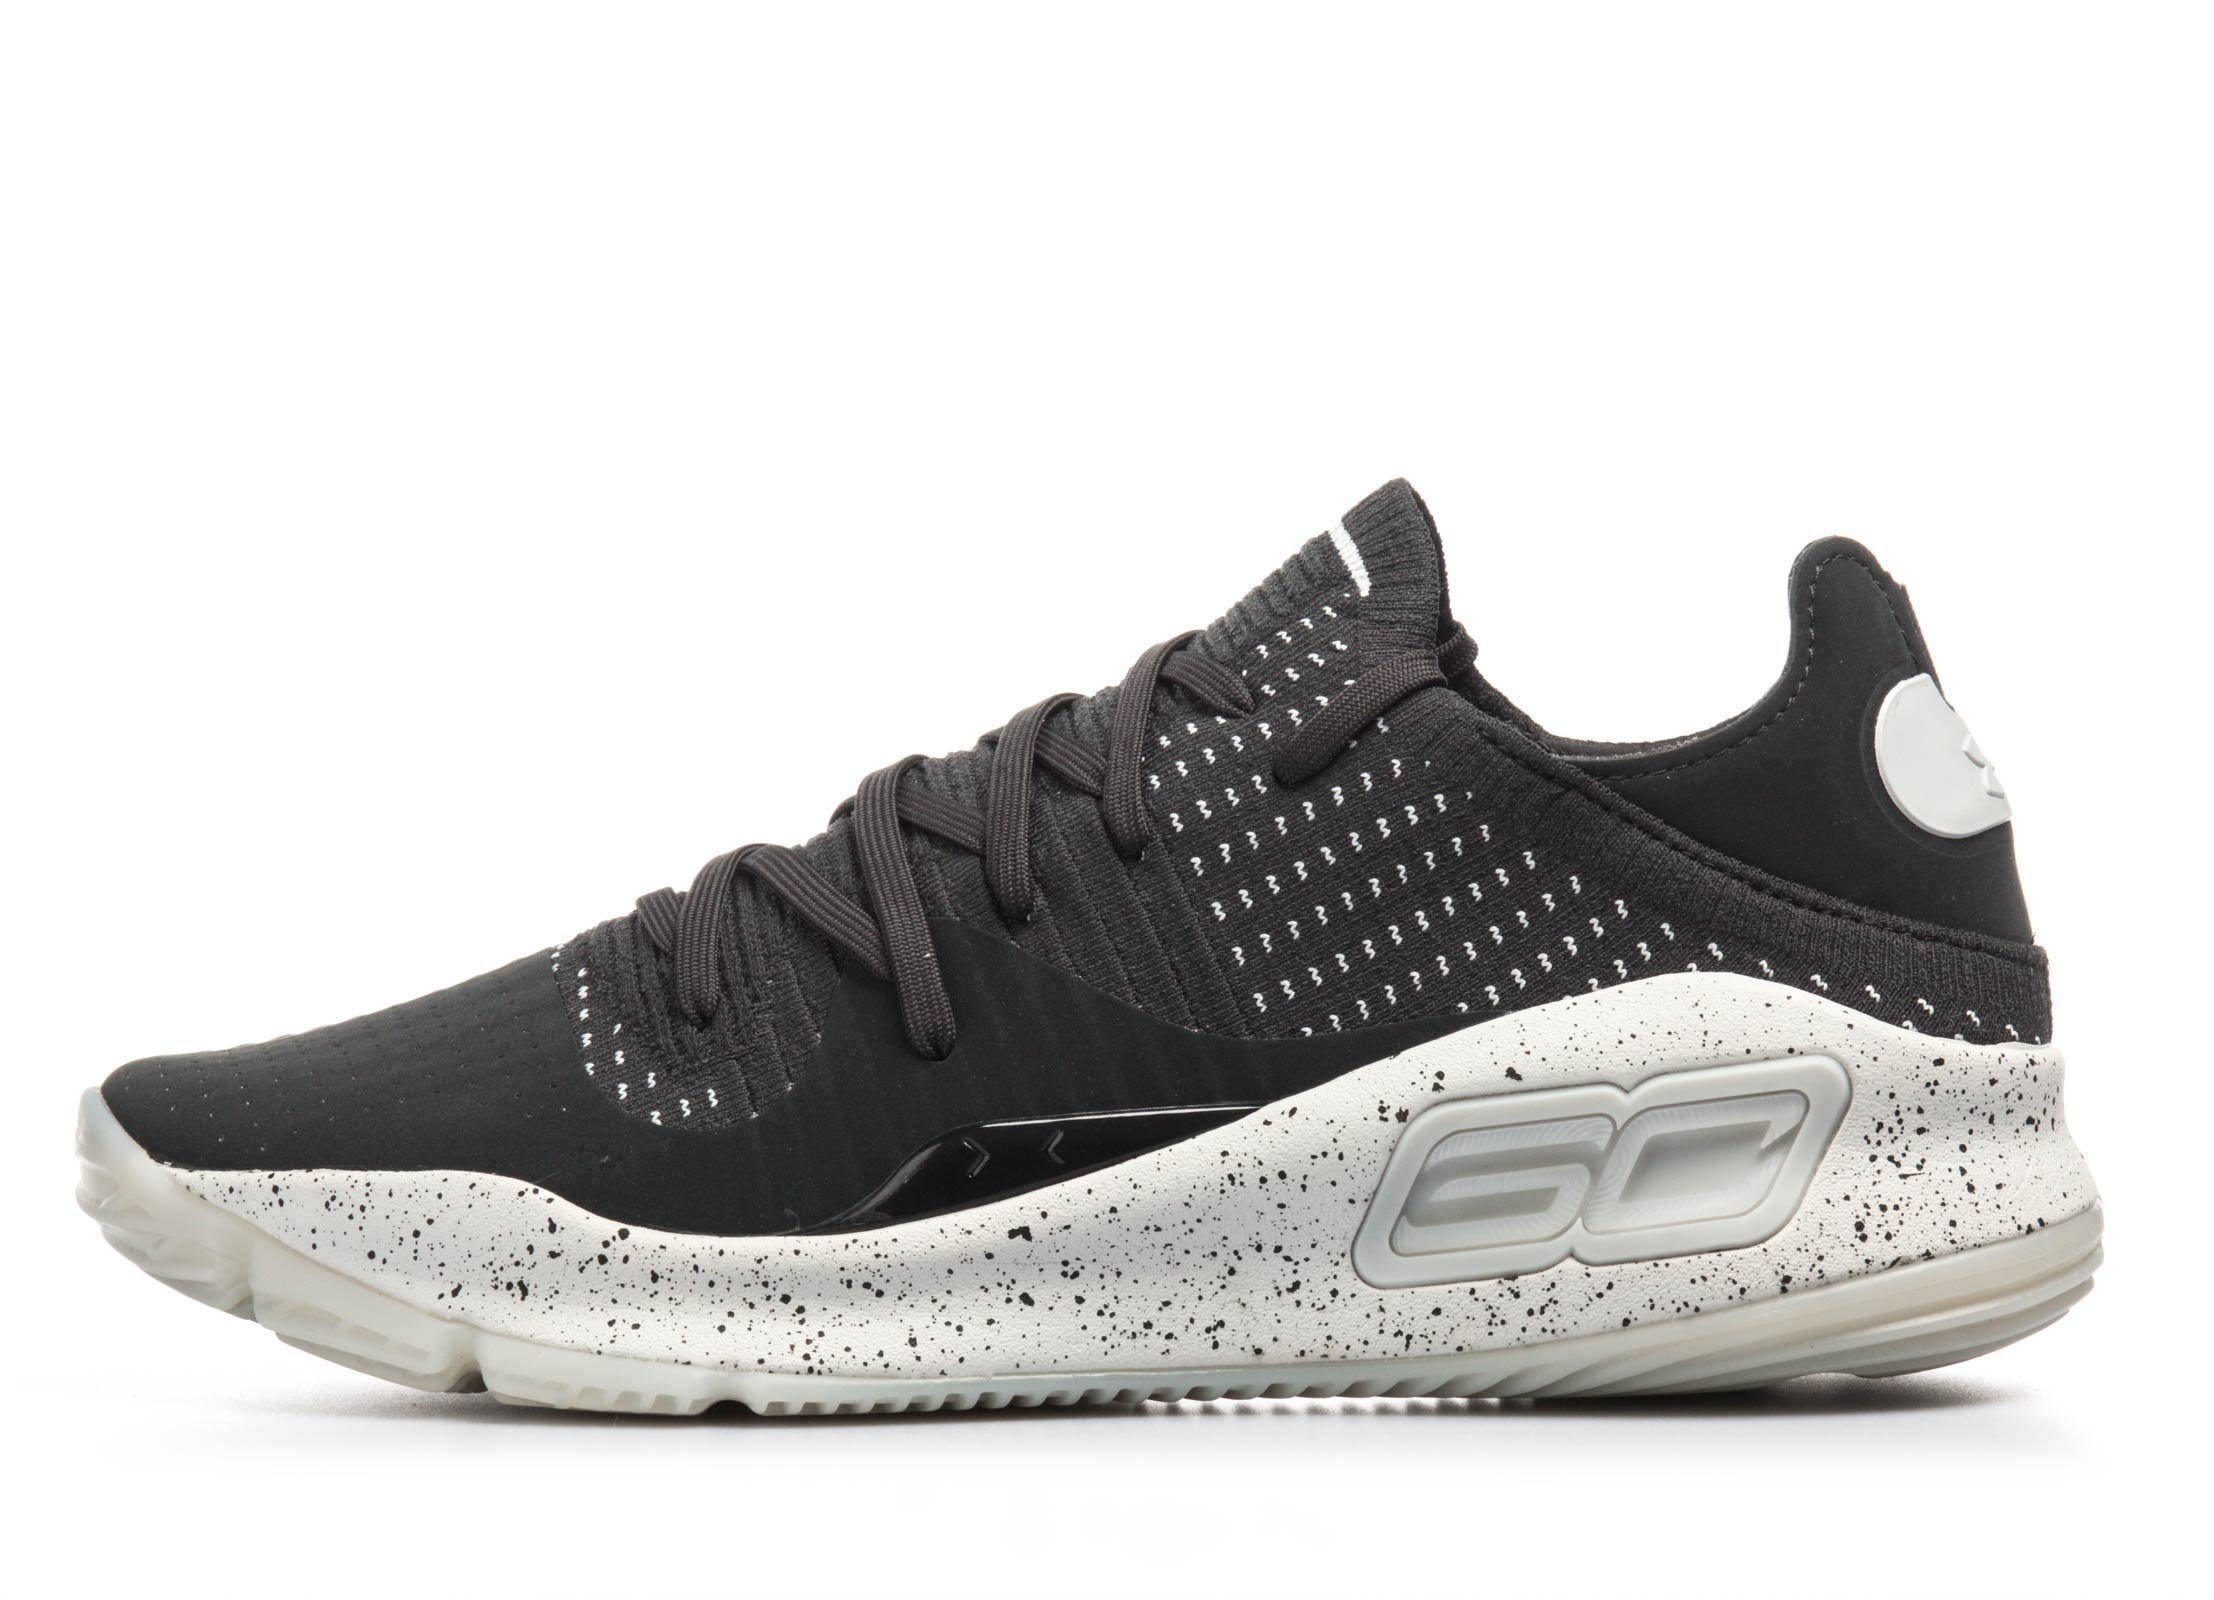 UNDER ARMOUR CURRY 4 LOW 3000083-104 Ανθρακί